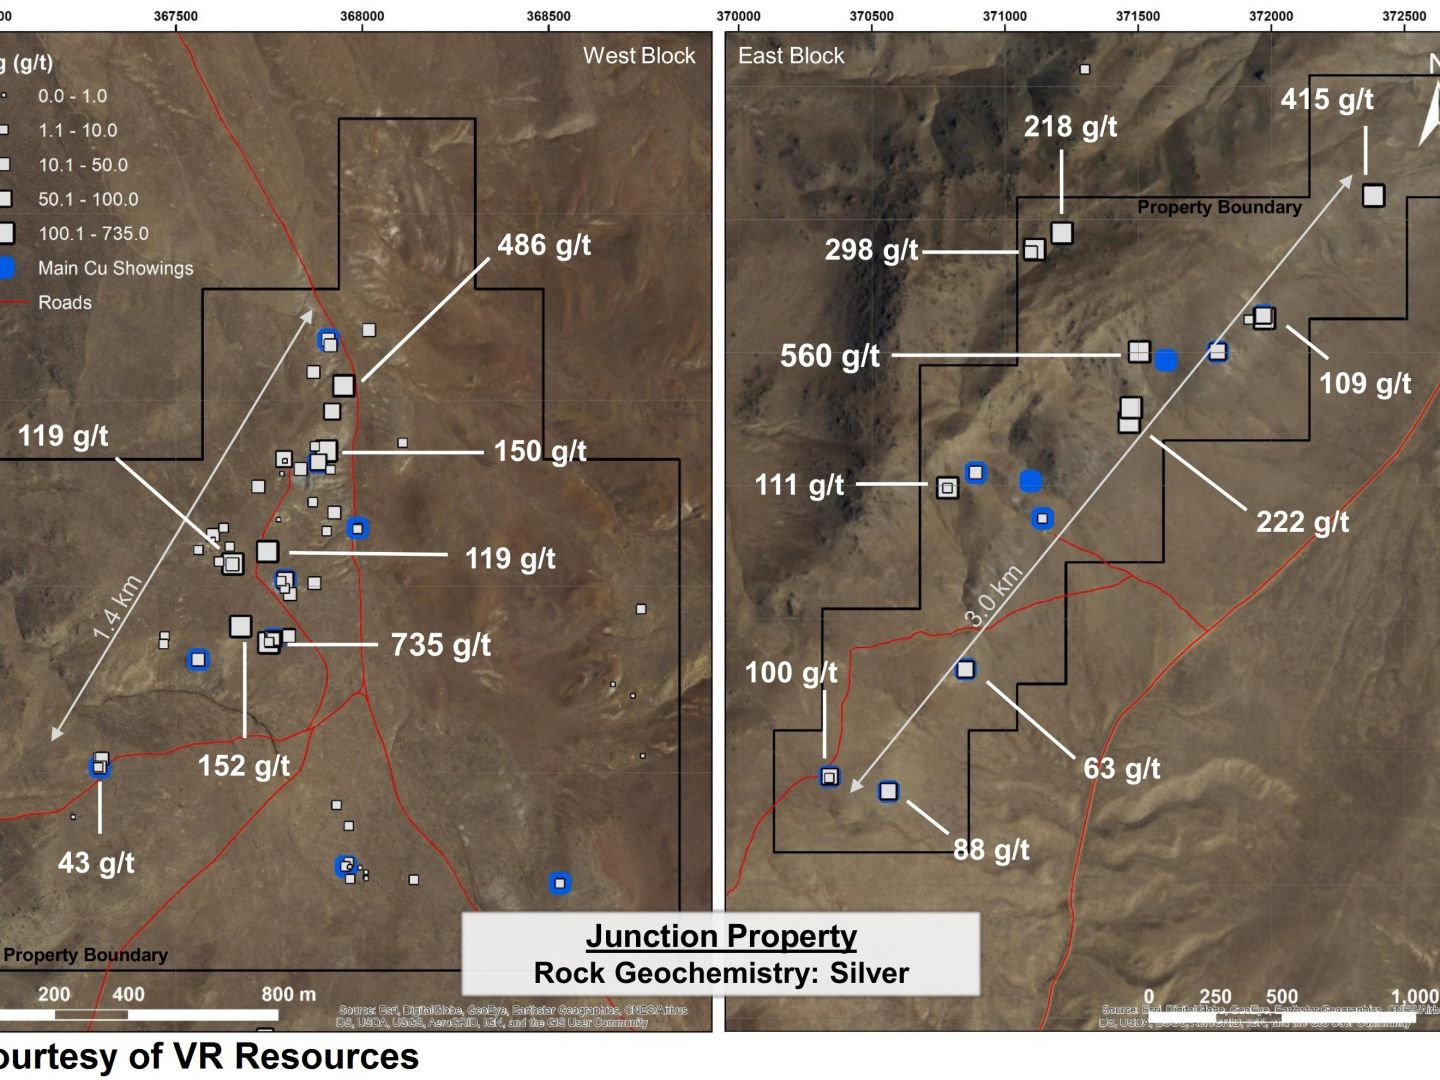 Junction Property - Rock Geochemistry: Silver